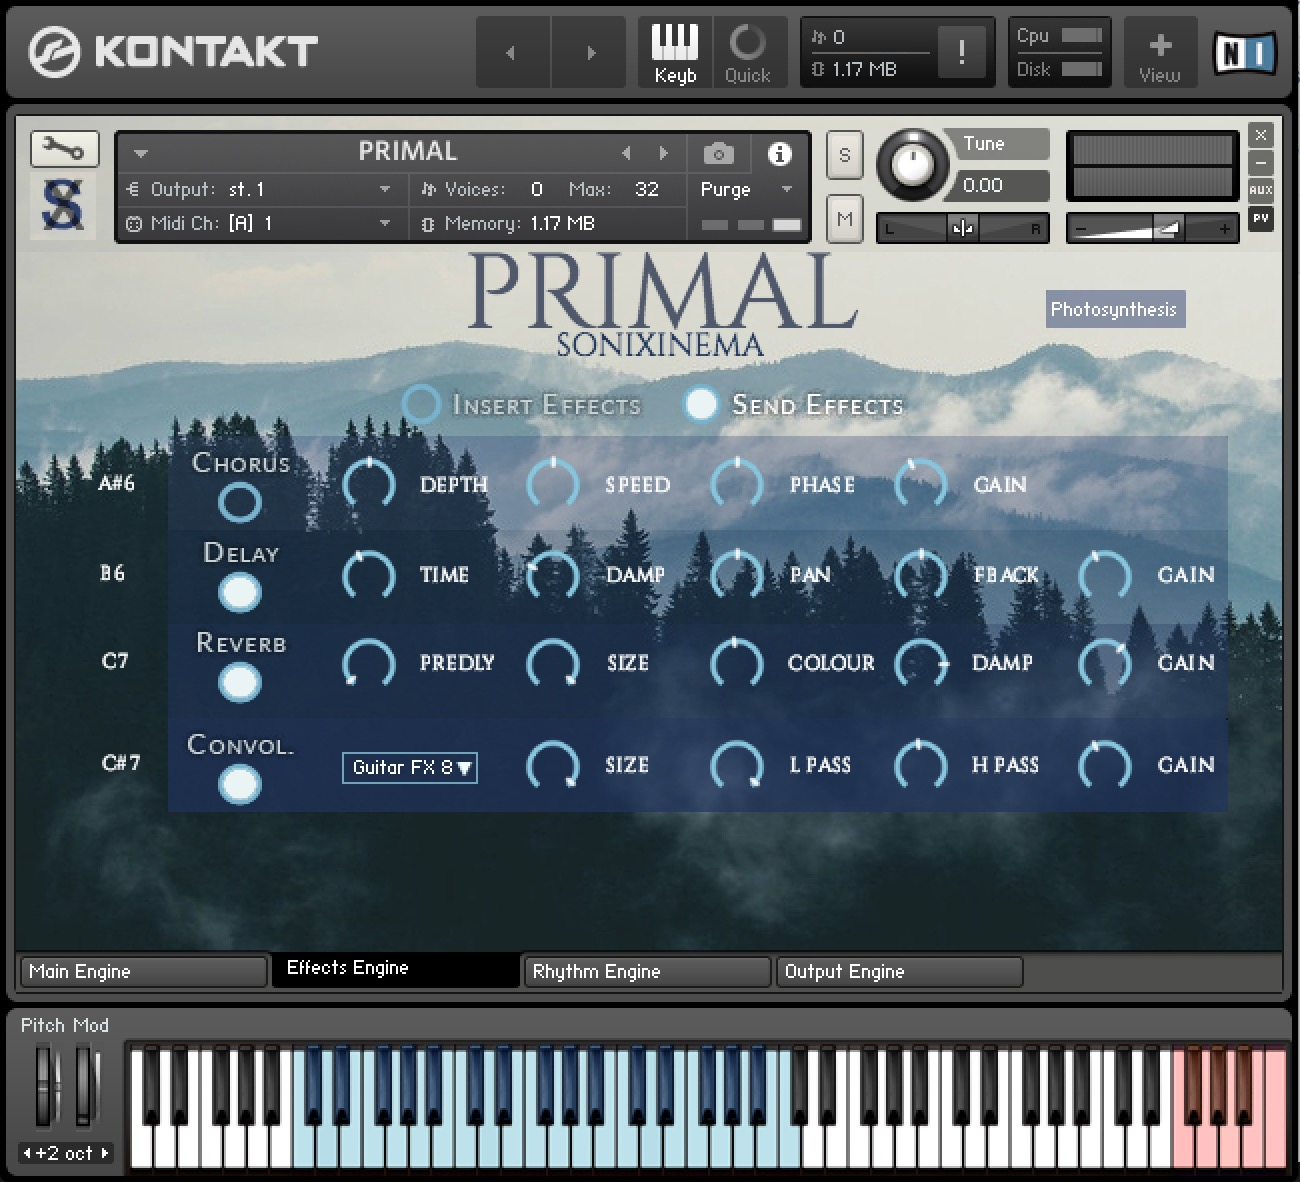 sonixinema-primal-2-effects-engine